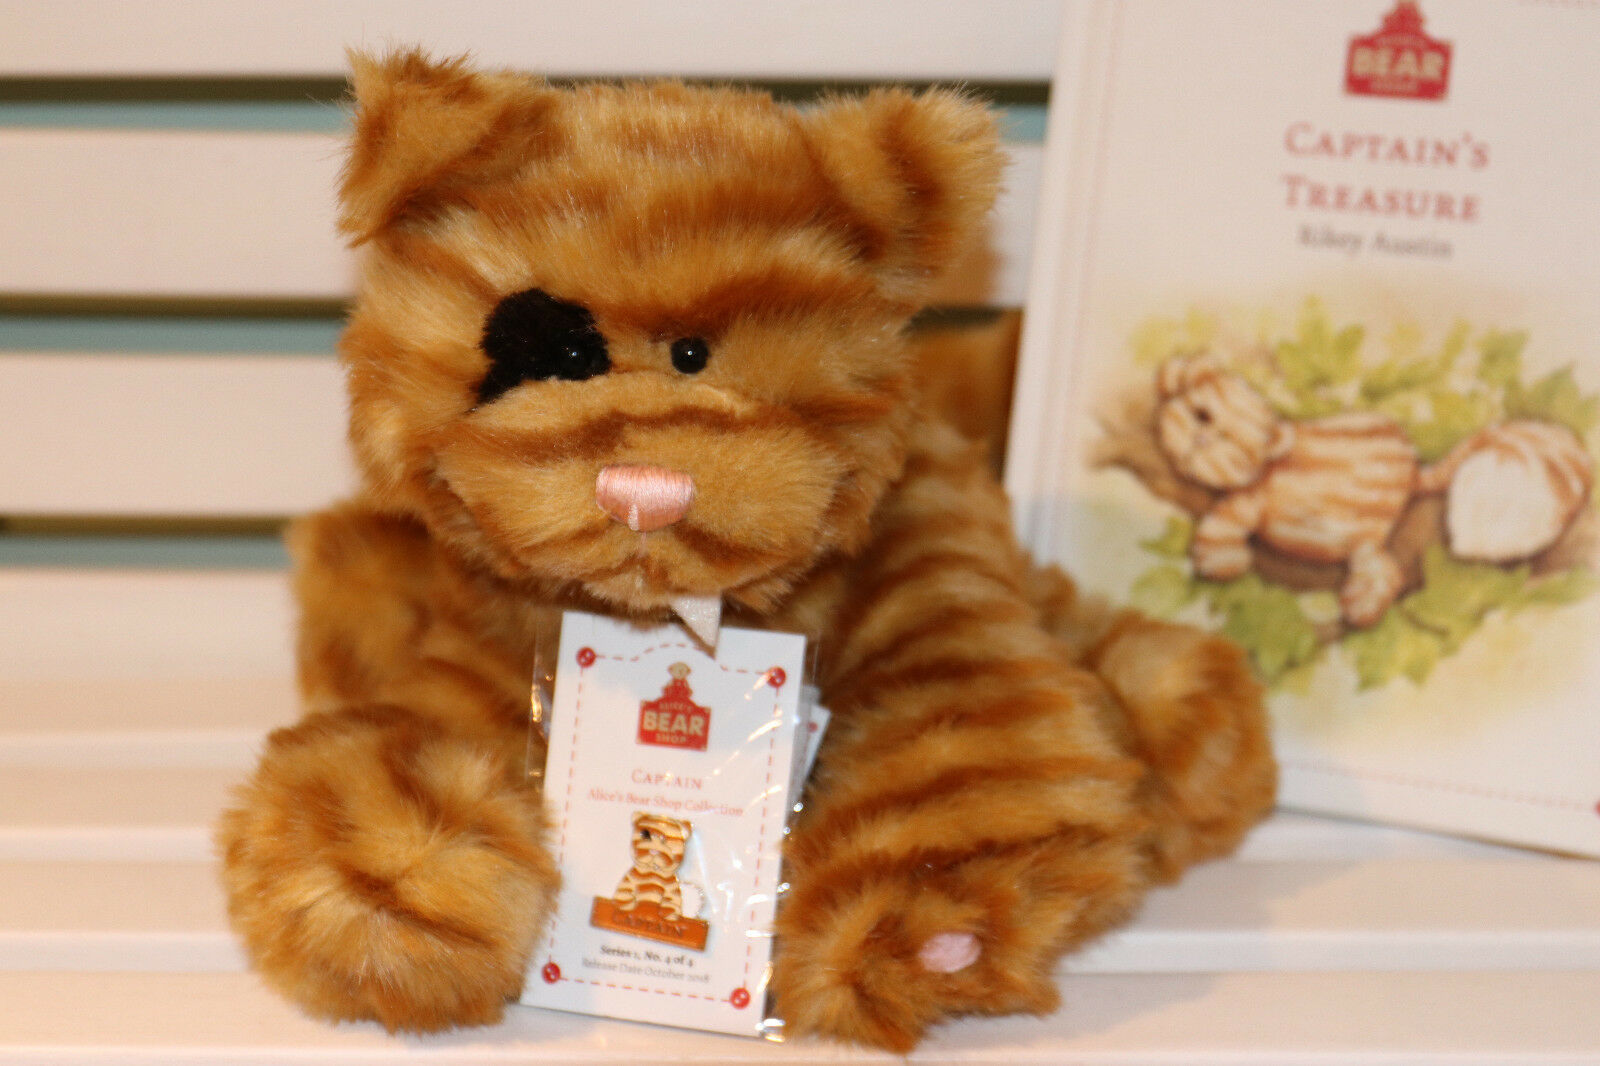 Alice'S BEAR shop-Capitano  Orso, libro e pin badge  da Charlie Bears-NUOVA CON ETICHETTA